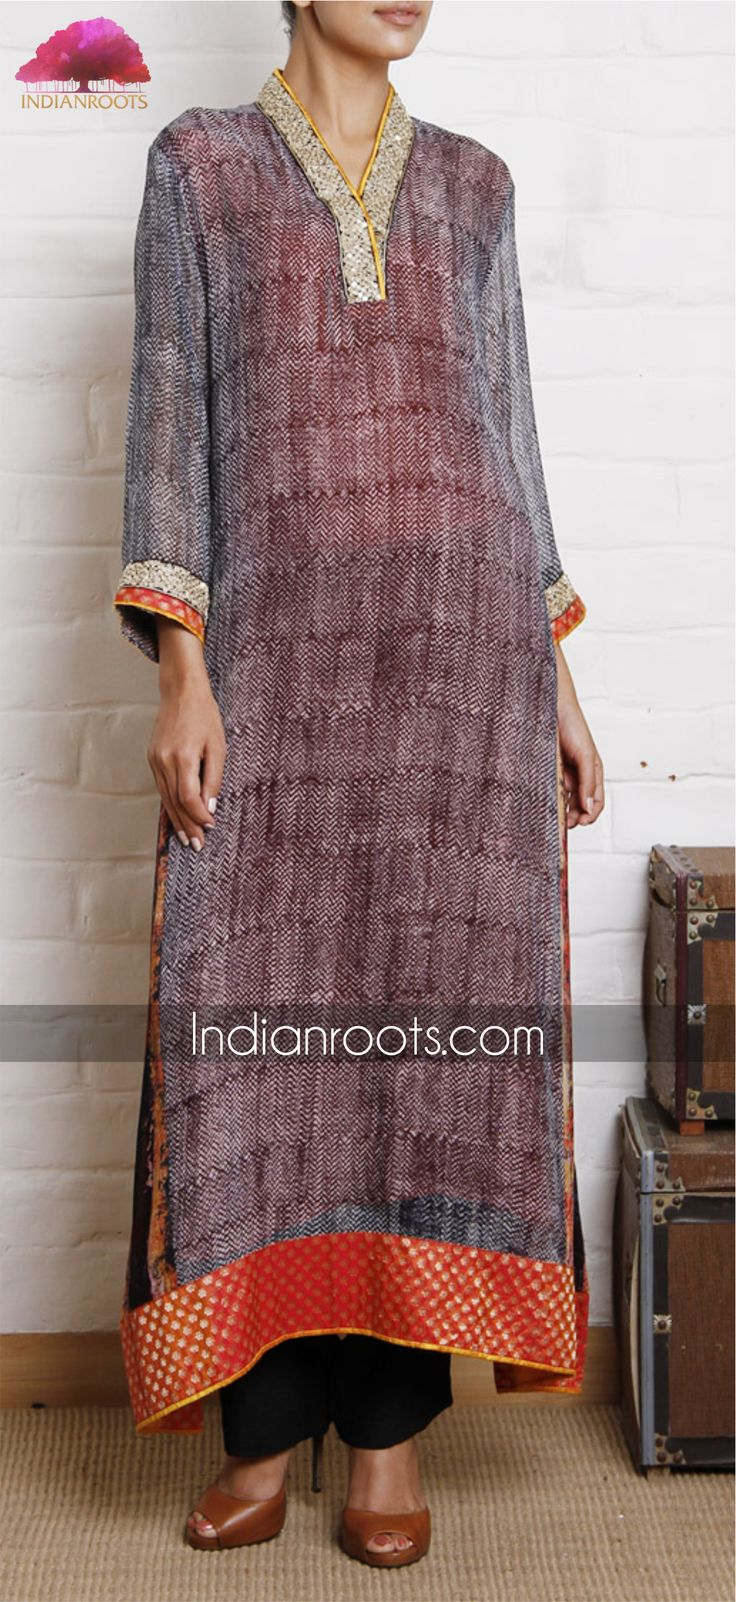 Grey georgette handwoven tunic with an orange finishing by Weavers Studio on Indianroots.com